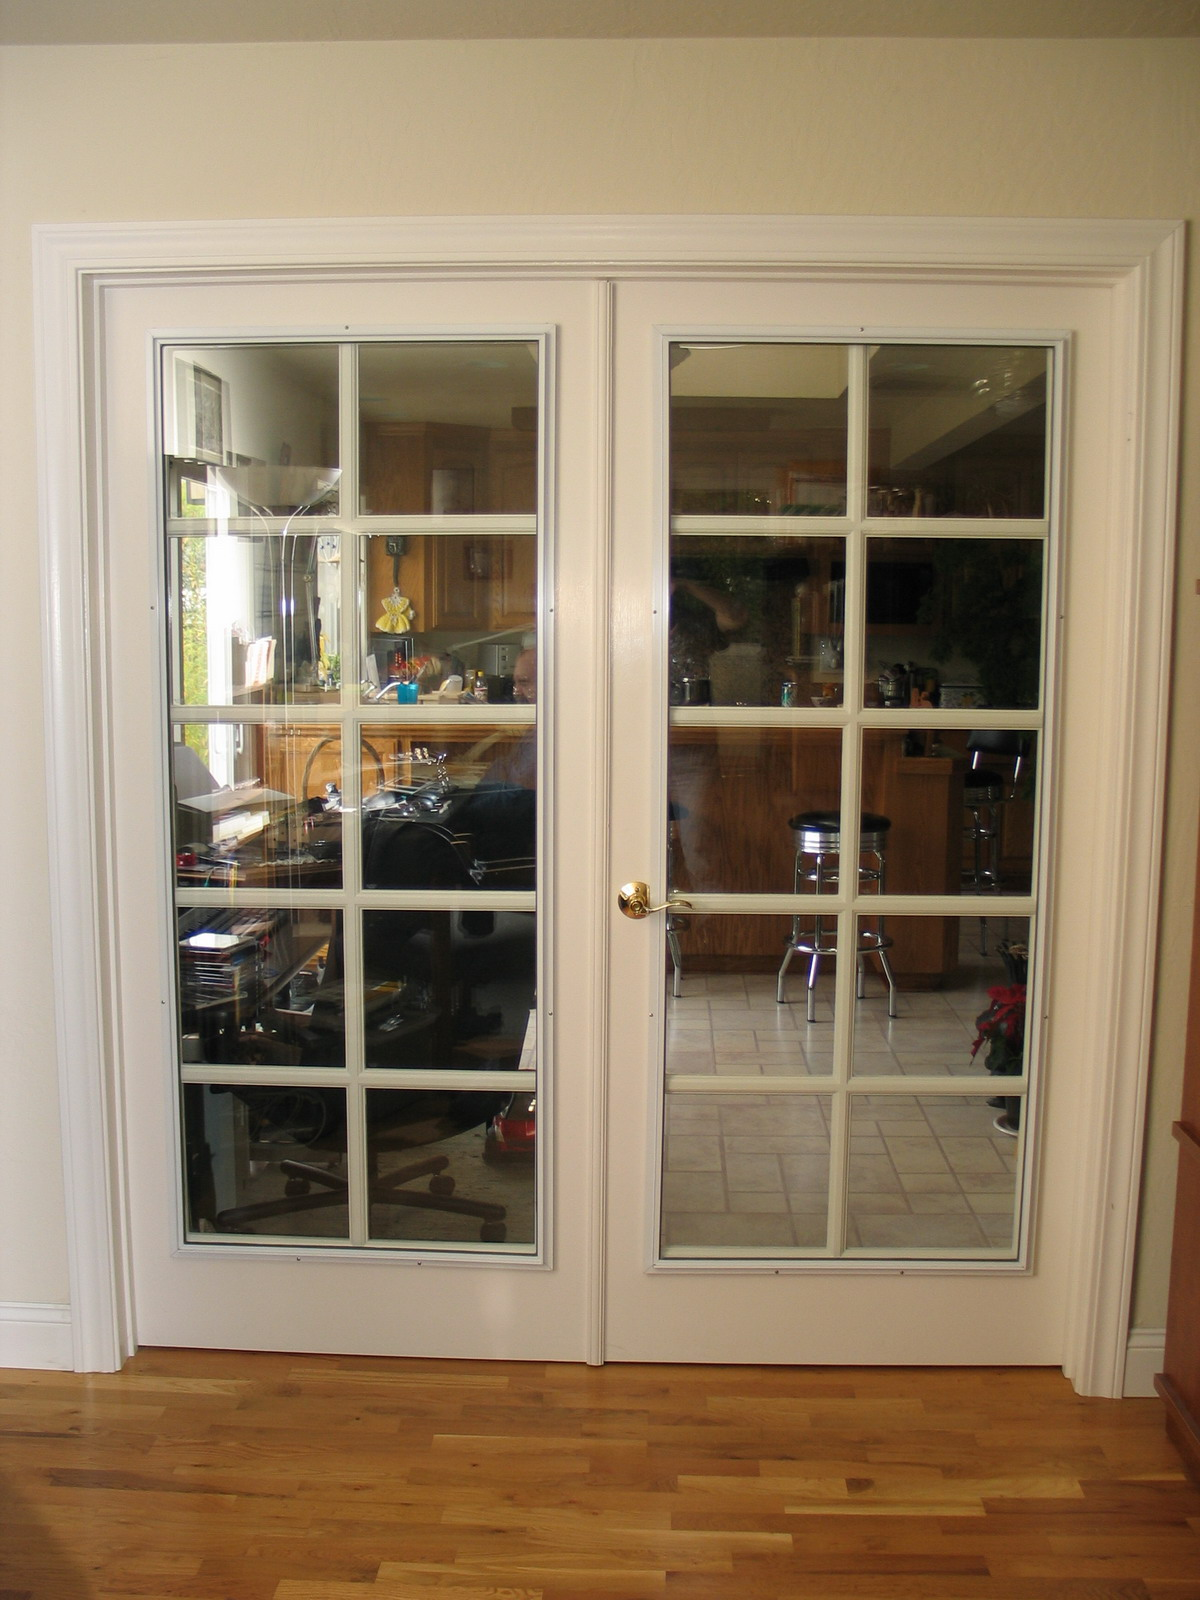 Soundproofing Gl Panel Mounted On An Interior French Door